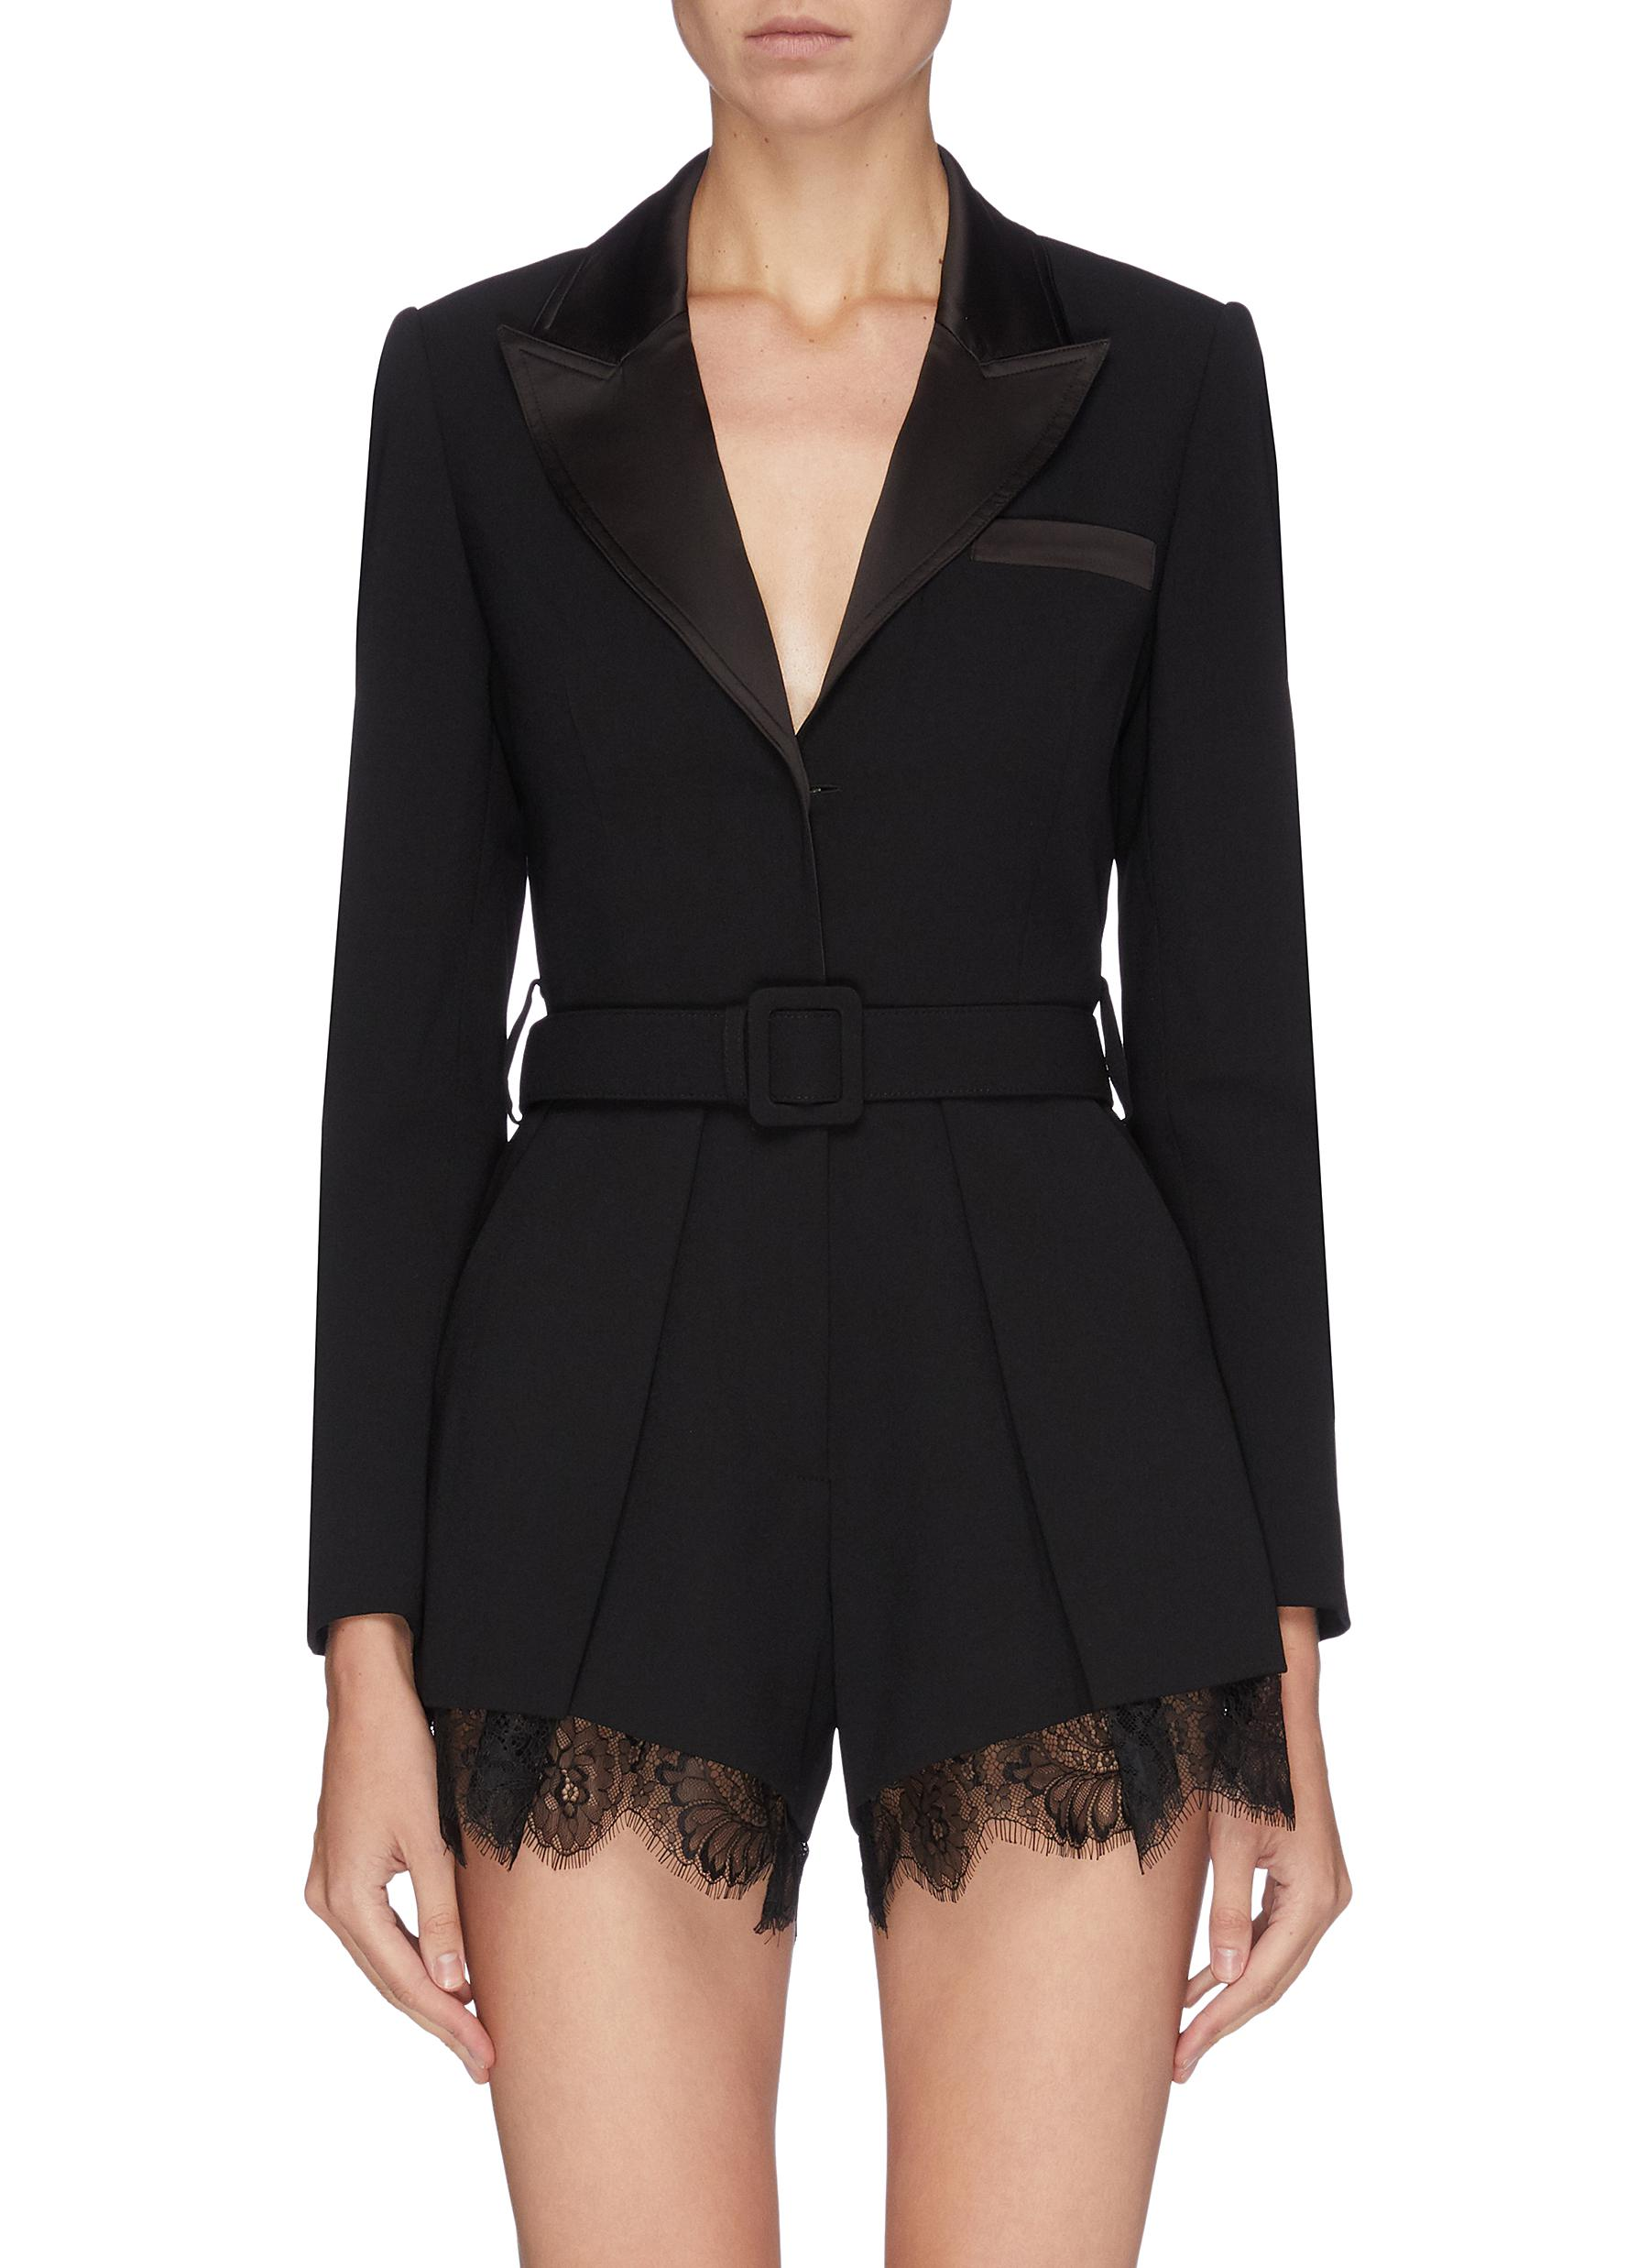 Belted lace cuff crepe rompers by Self-Portrait